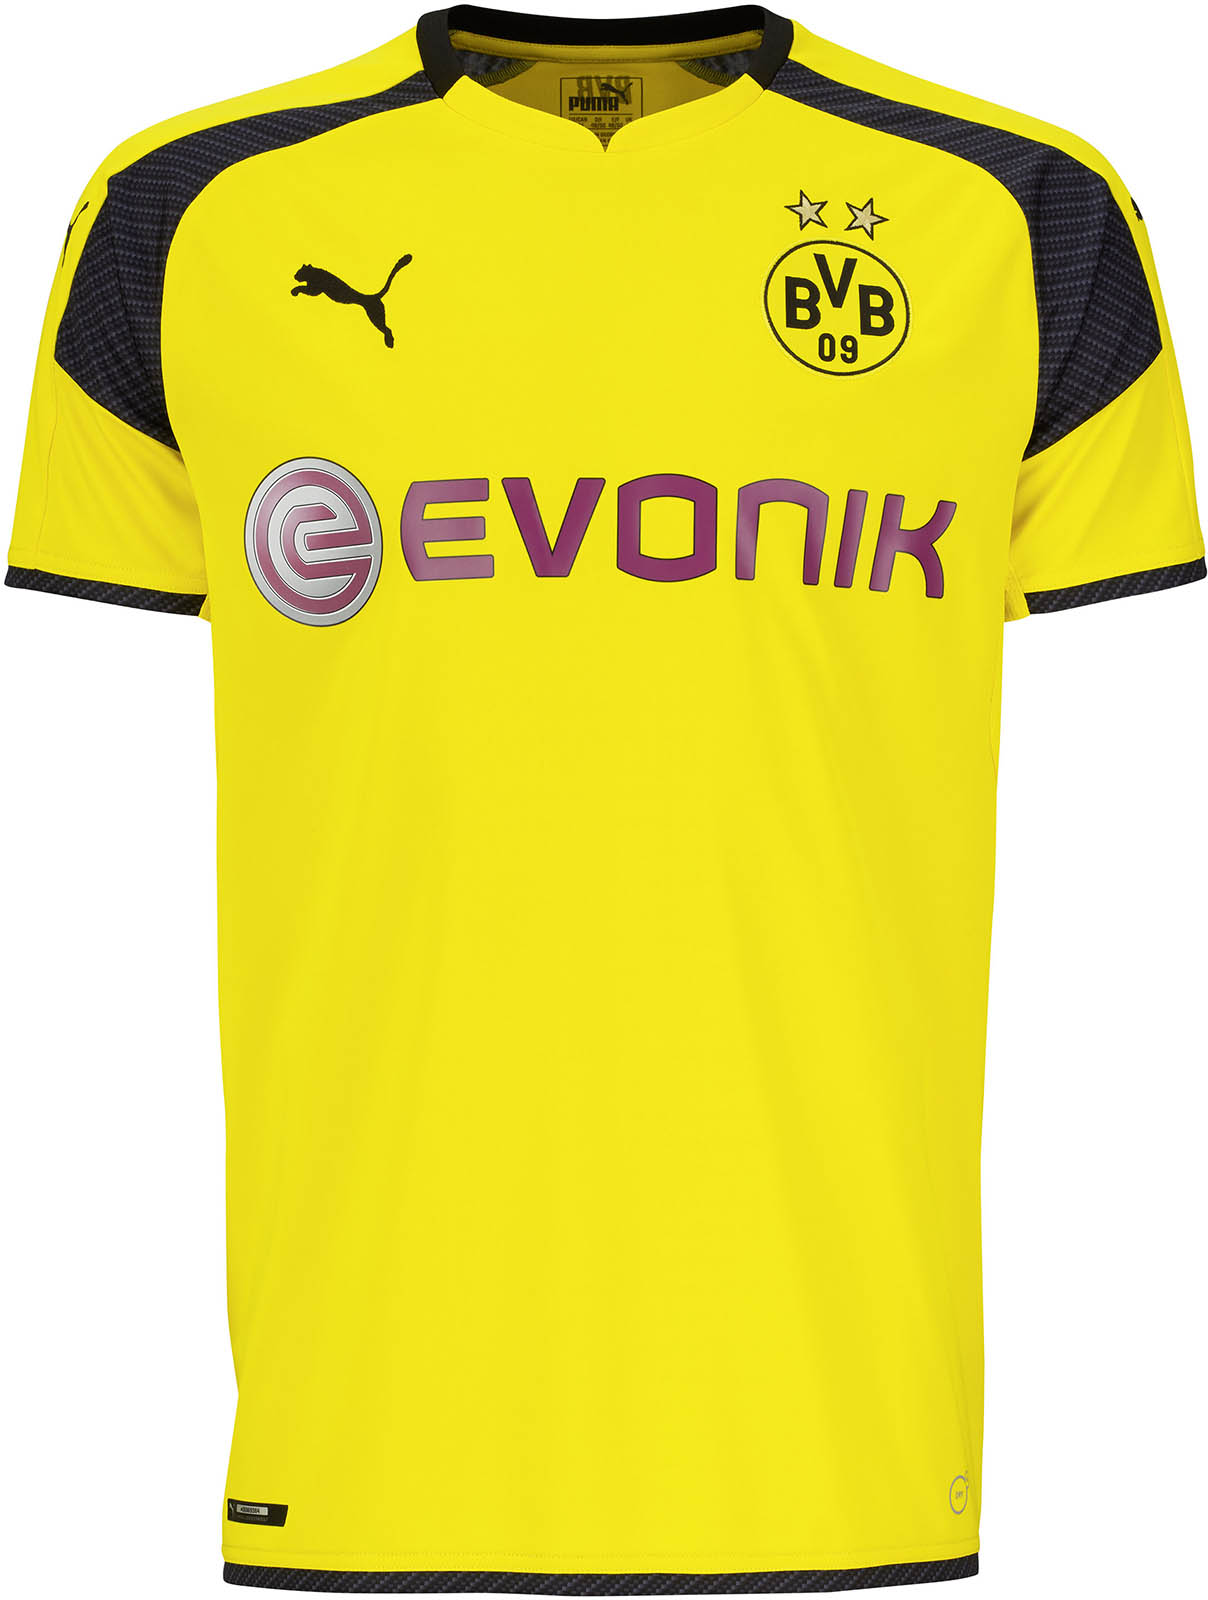 bvb dortmund champions league